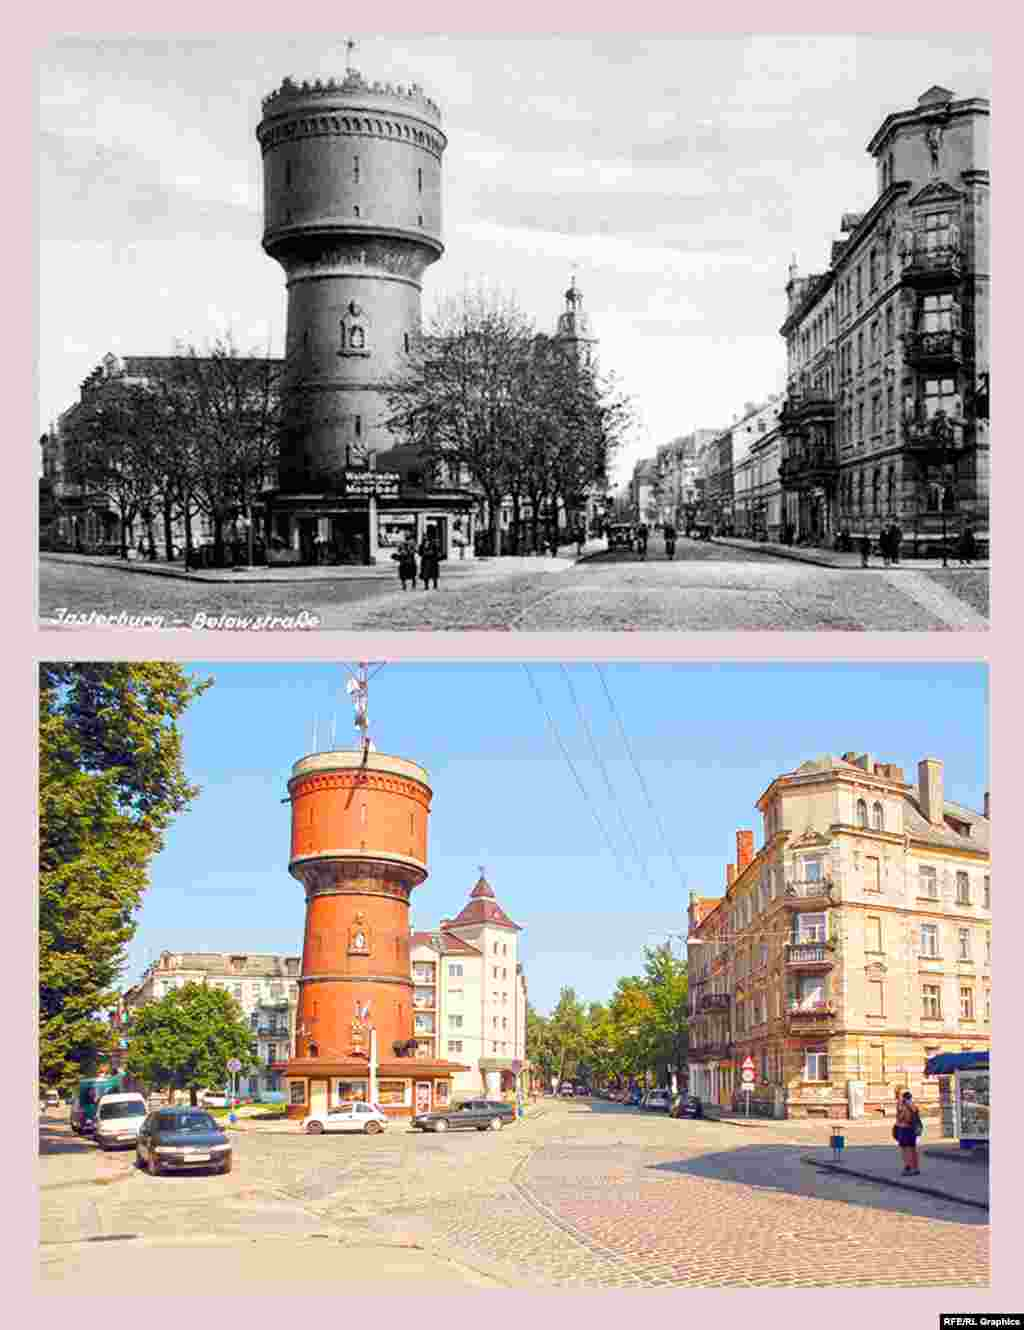 Chernyakhovsk (formerly Insterburg), corner of Sportivnaya and Gagarina streets (formerly Belov Strasse and Kazernen Strasse) The water tower was built in 1898 using the advanced design of Otto Intse's water reservoir system. During the Russian occupation of Insterburg between August and September 1914, Russian engineers, trying to restart the disrupted water supply, caused an explosion instead. After the reconstruction, the town's water system was restored, but the tower hasn't been used as intended since the end of 1930s. Today the city TV and radio stations are housed inside it.